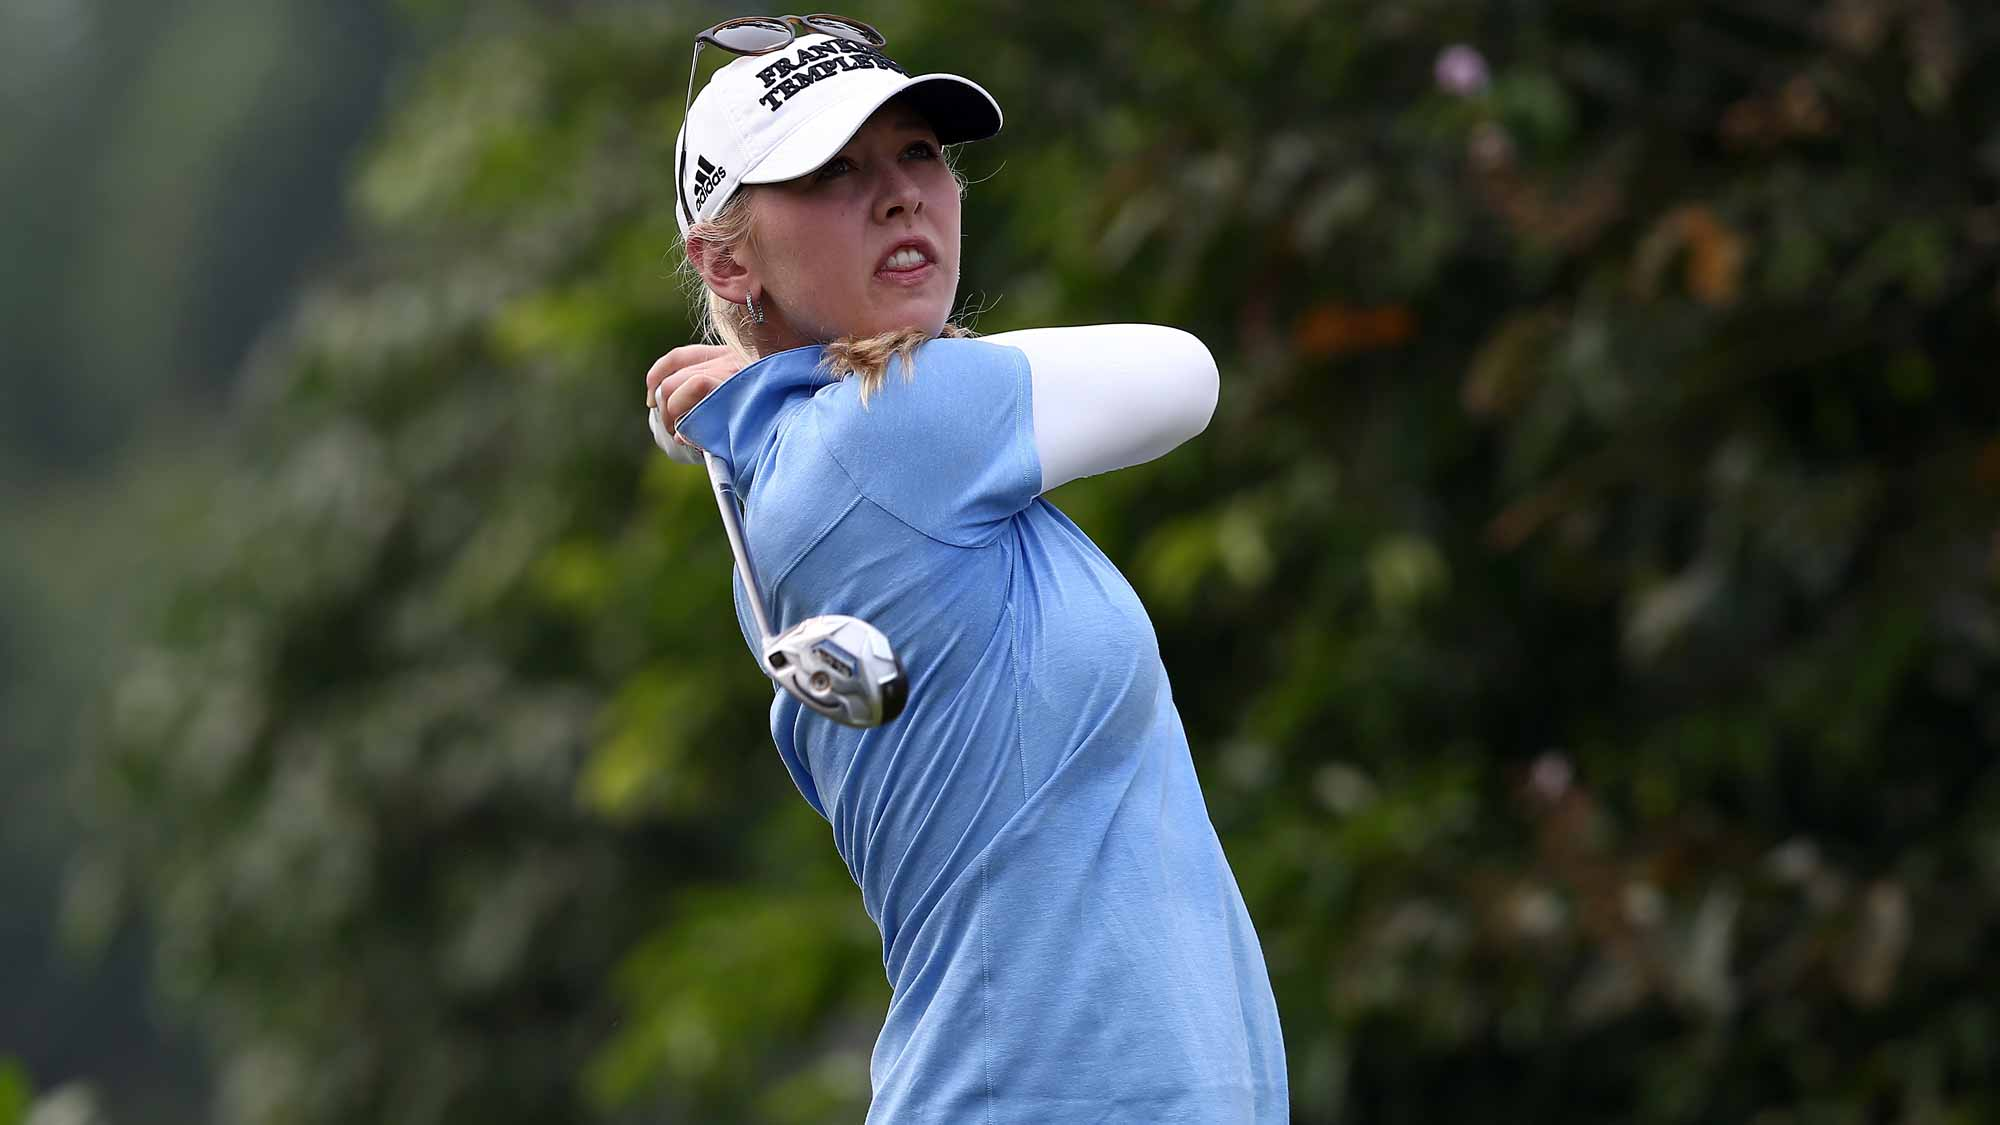 Jessica Korda of USA watches her tee shot on the 4th hole during the final round of the Sime Darby LPGA Tour at Kuala Lumpur Golf & Country Club